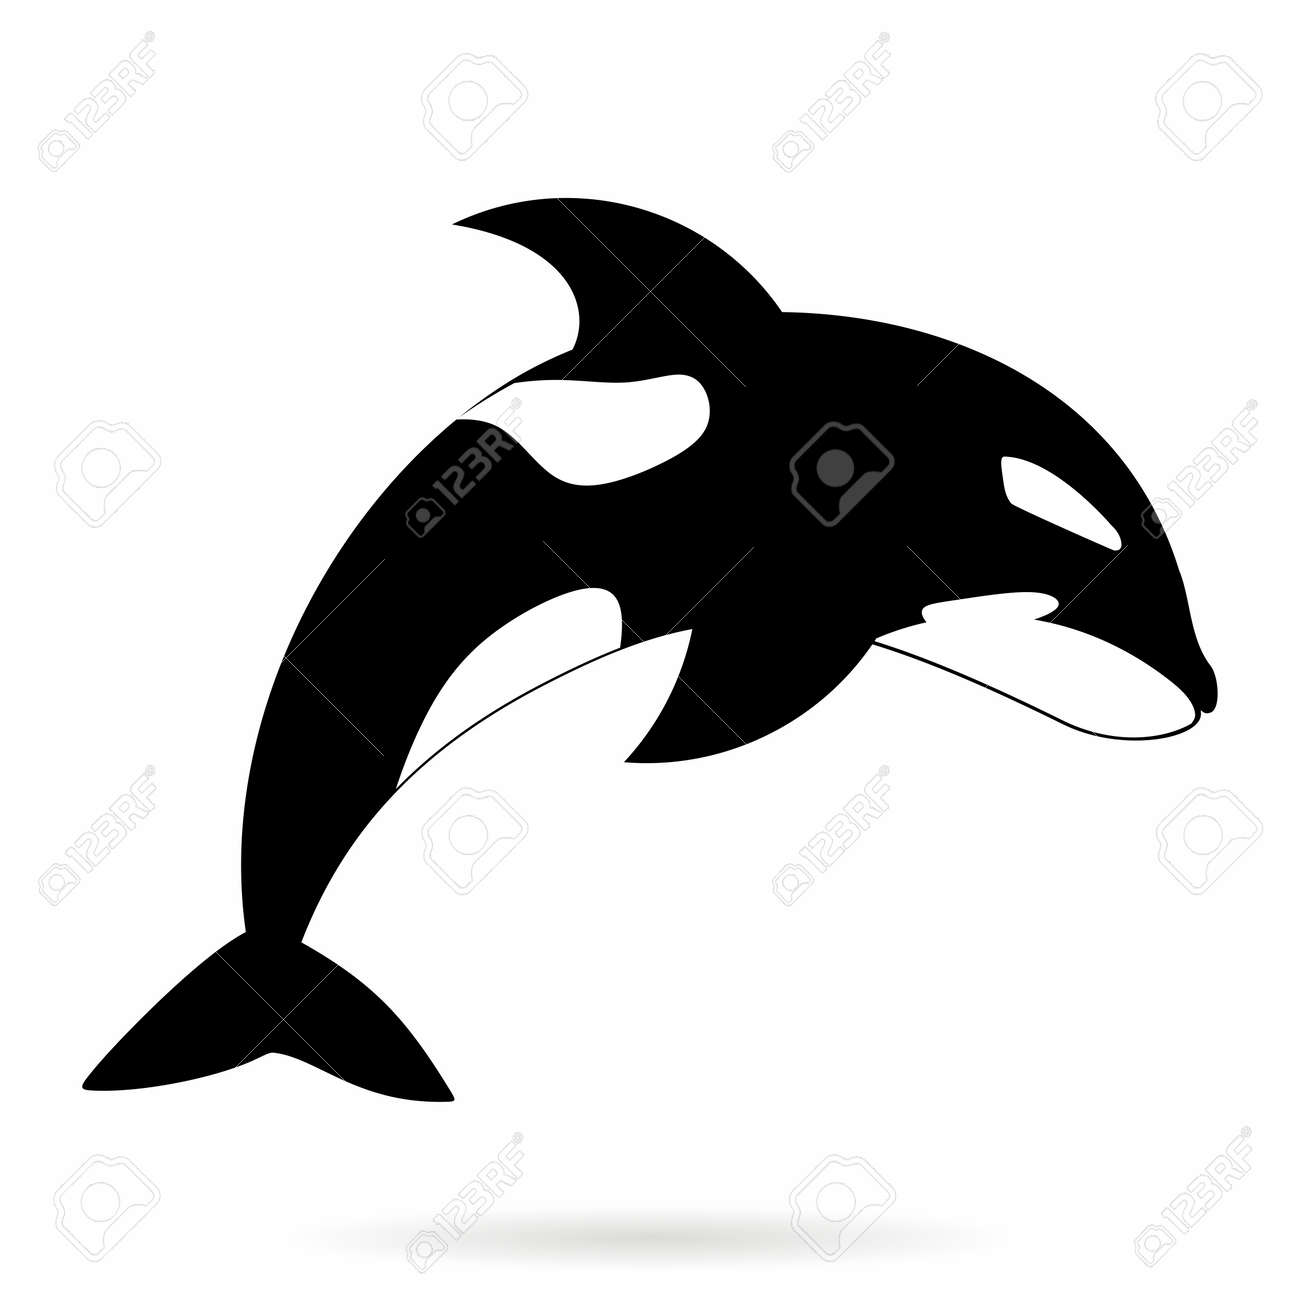 Killer Whale Stock Photos Royalty Free Killer Whale Images